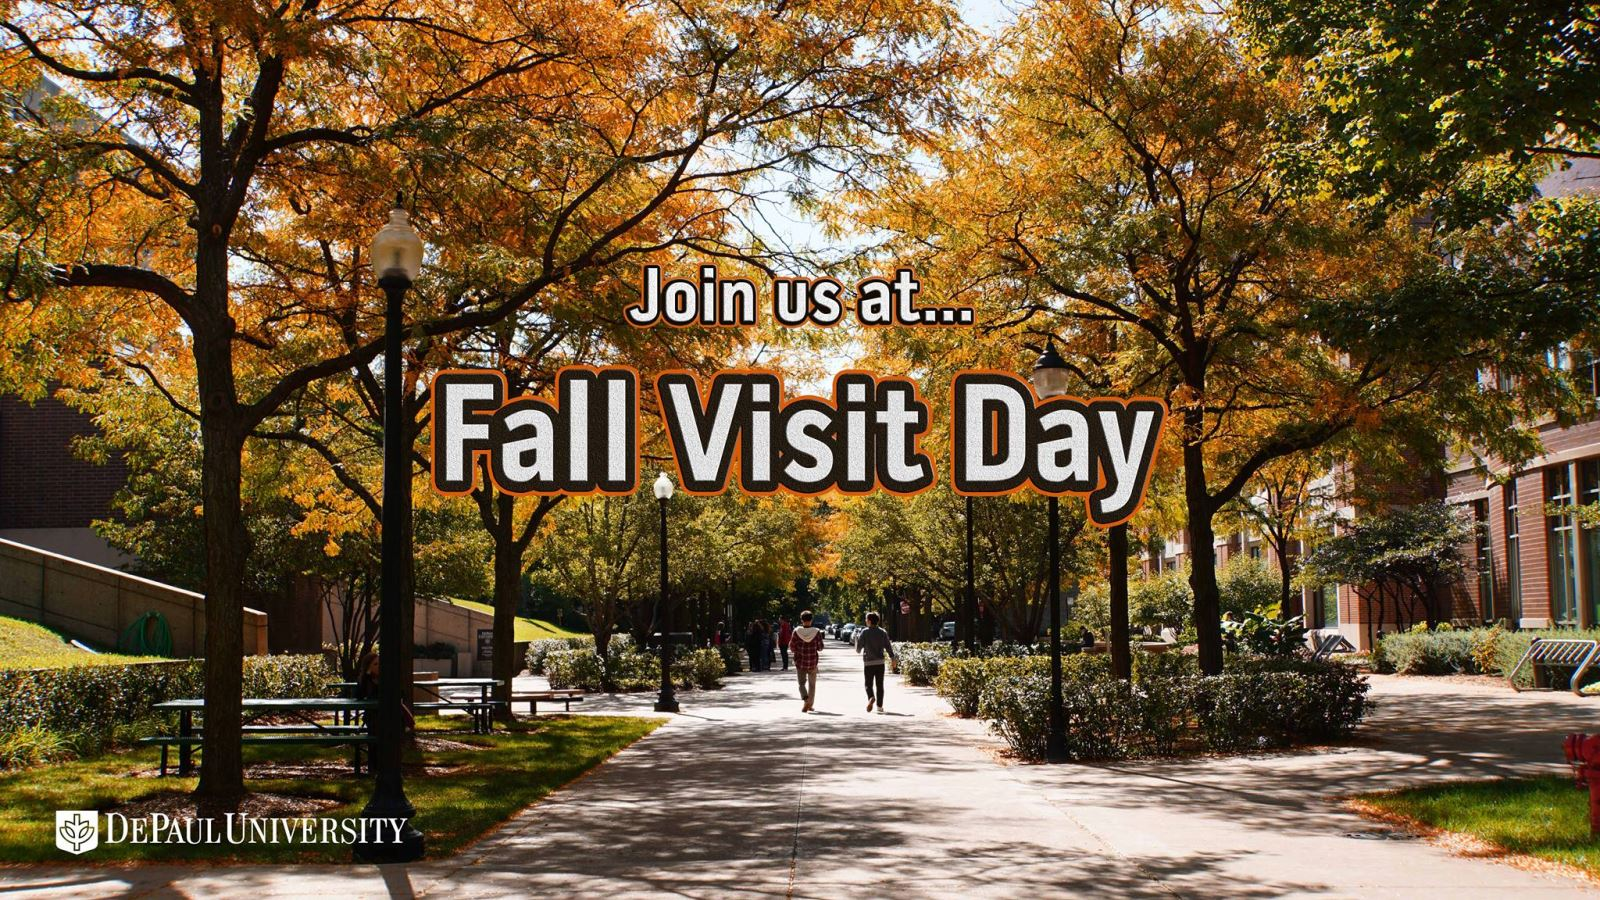 Fall Visit Day photo FallVisitDay_zpsd9ca0358.jpg